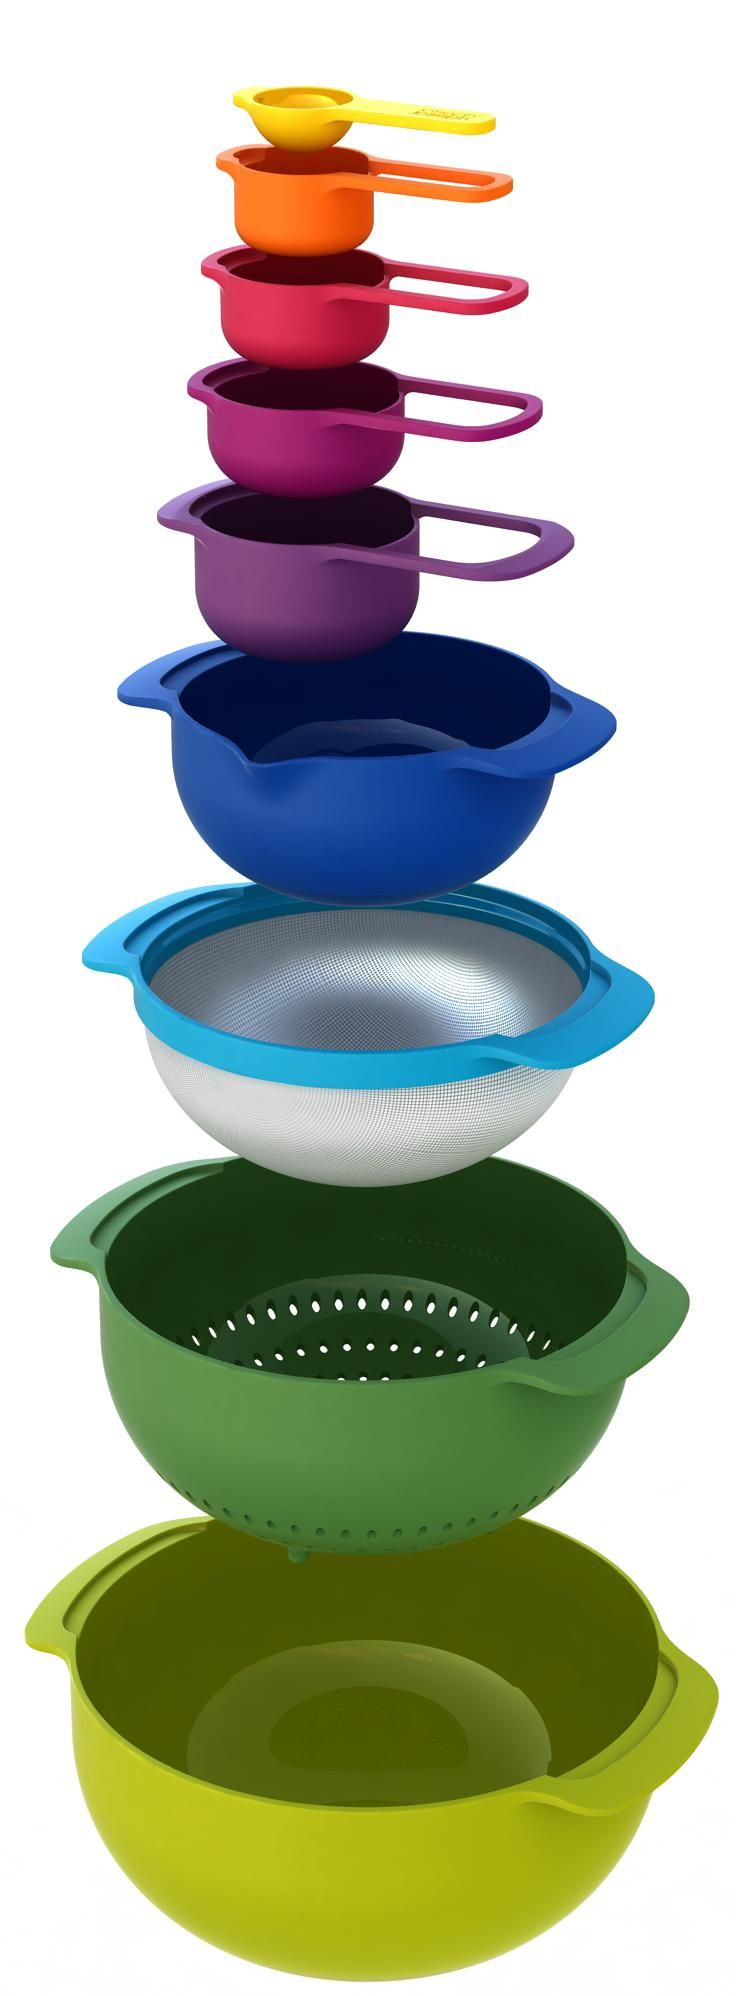 Joseph Joseph's Nest™ line is the ultimate collection of practical, space-saving kitchenware comprising a unique range of food preparation sets. - To connect with us, and our community of people from Australia and around the world, learning how to live large in small places, visit us at www.Facebook.com/TinyHousesAustralia